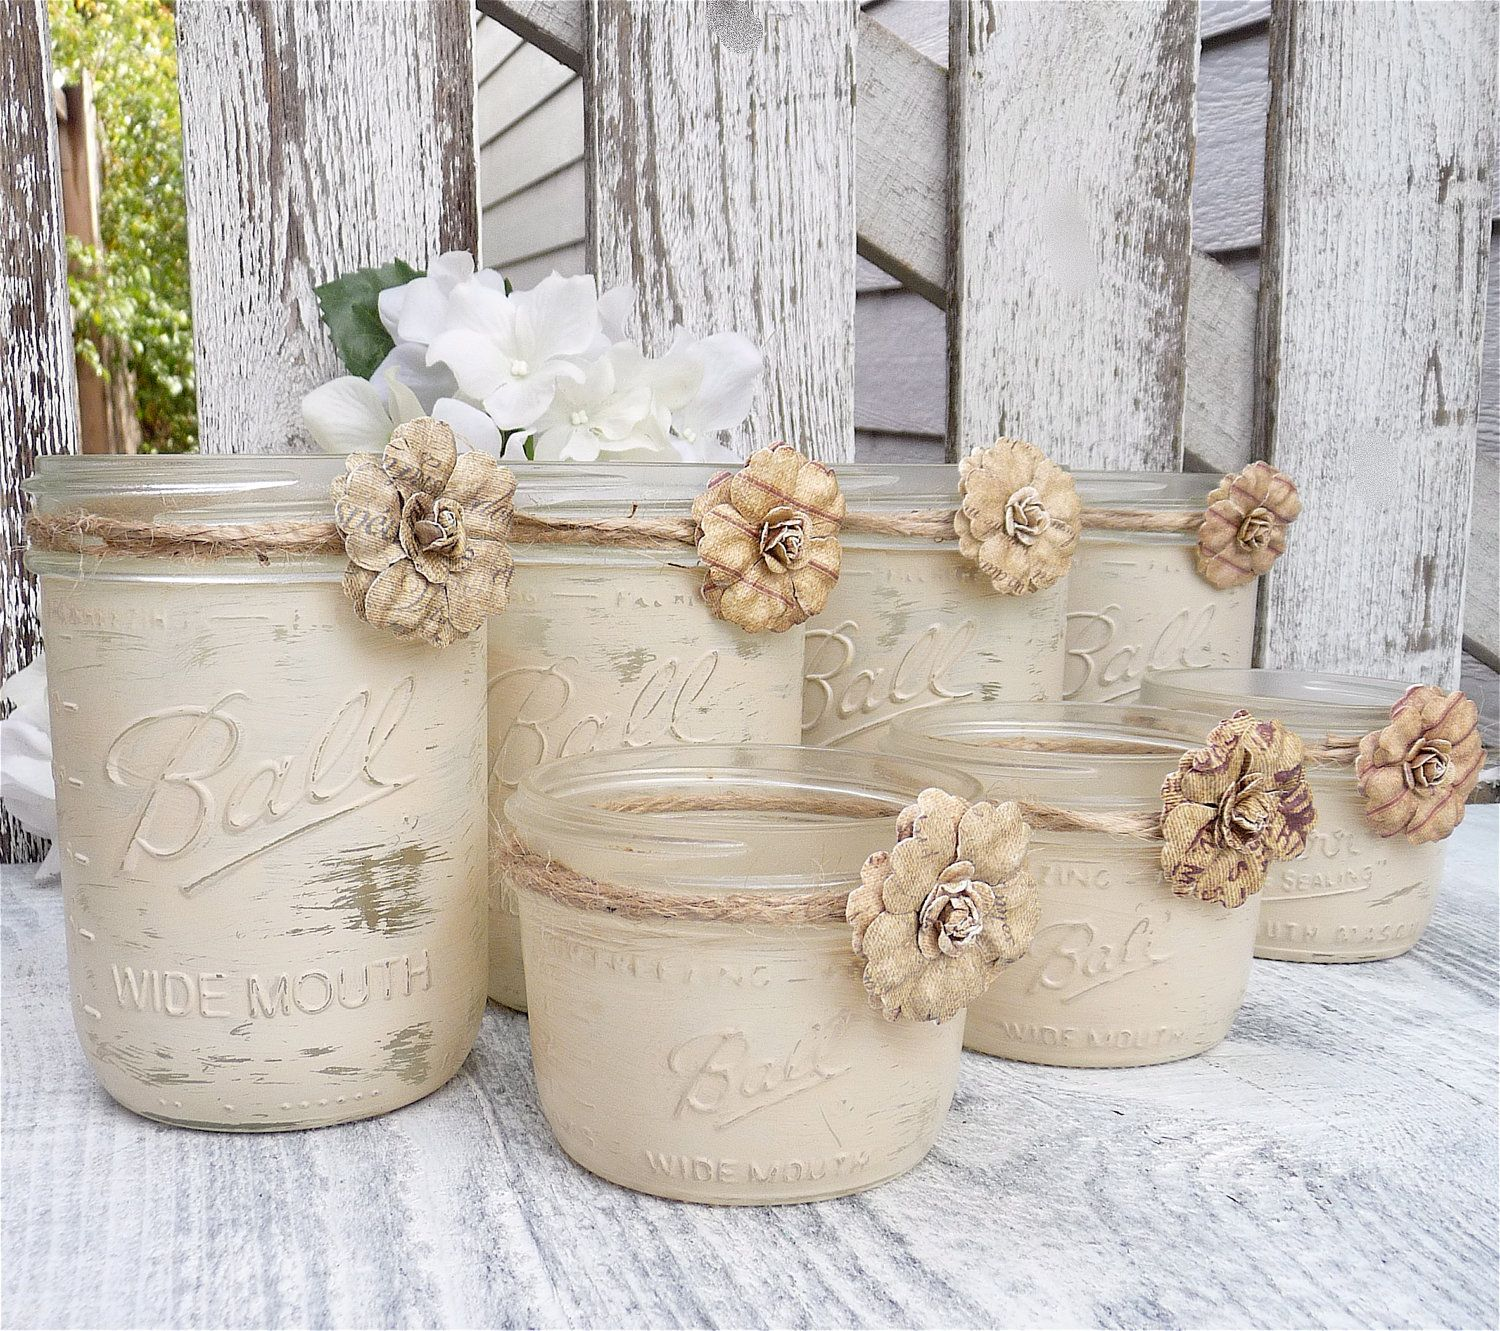 Rustic Country Chic Weddings Wedding Shabby Upcycled Decor Candle